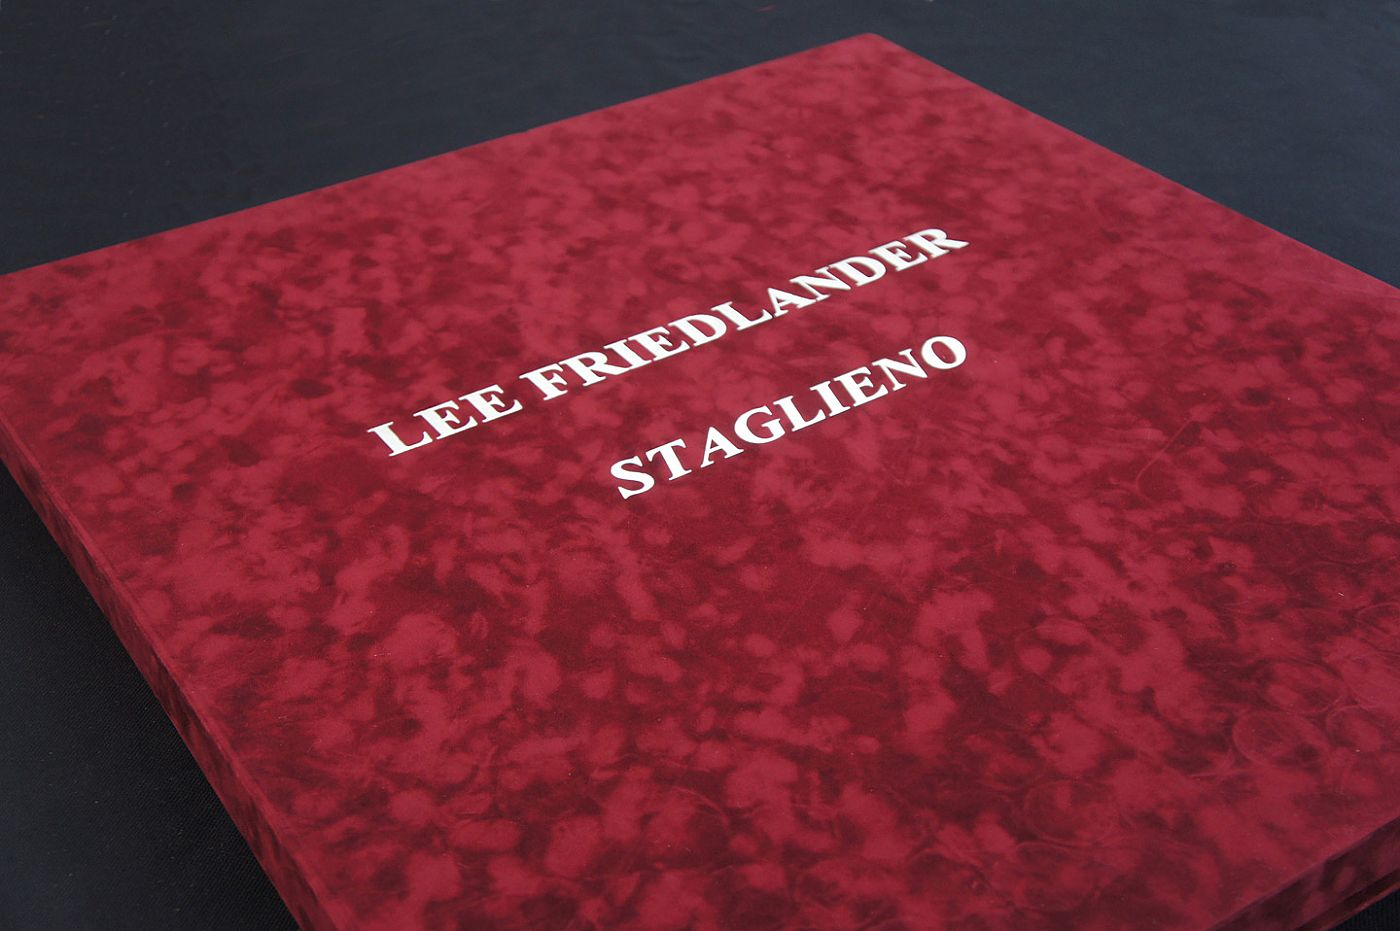 Lee Friedlander: Staglieno (Special Limited Edition Portfolio of 15 Photogravure Prints)